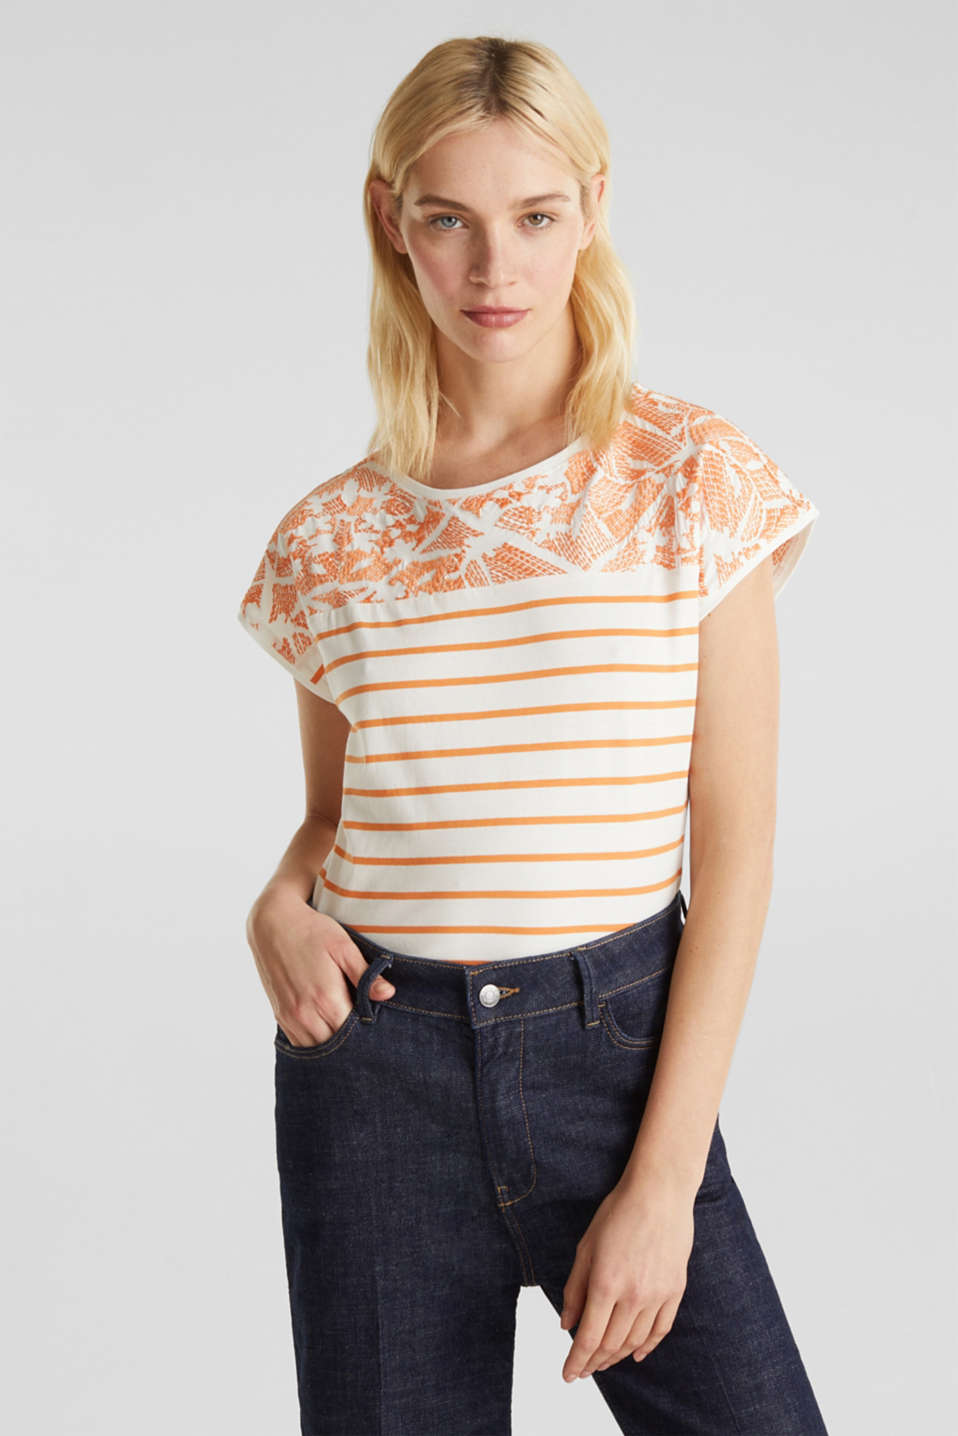 Embroidered top, organic cotton, RUST ORANGE, detail image number 0